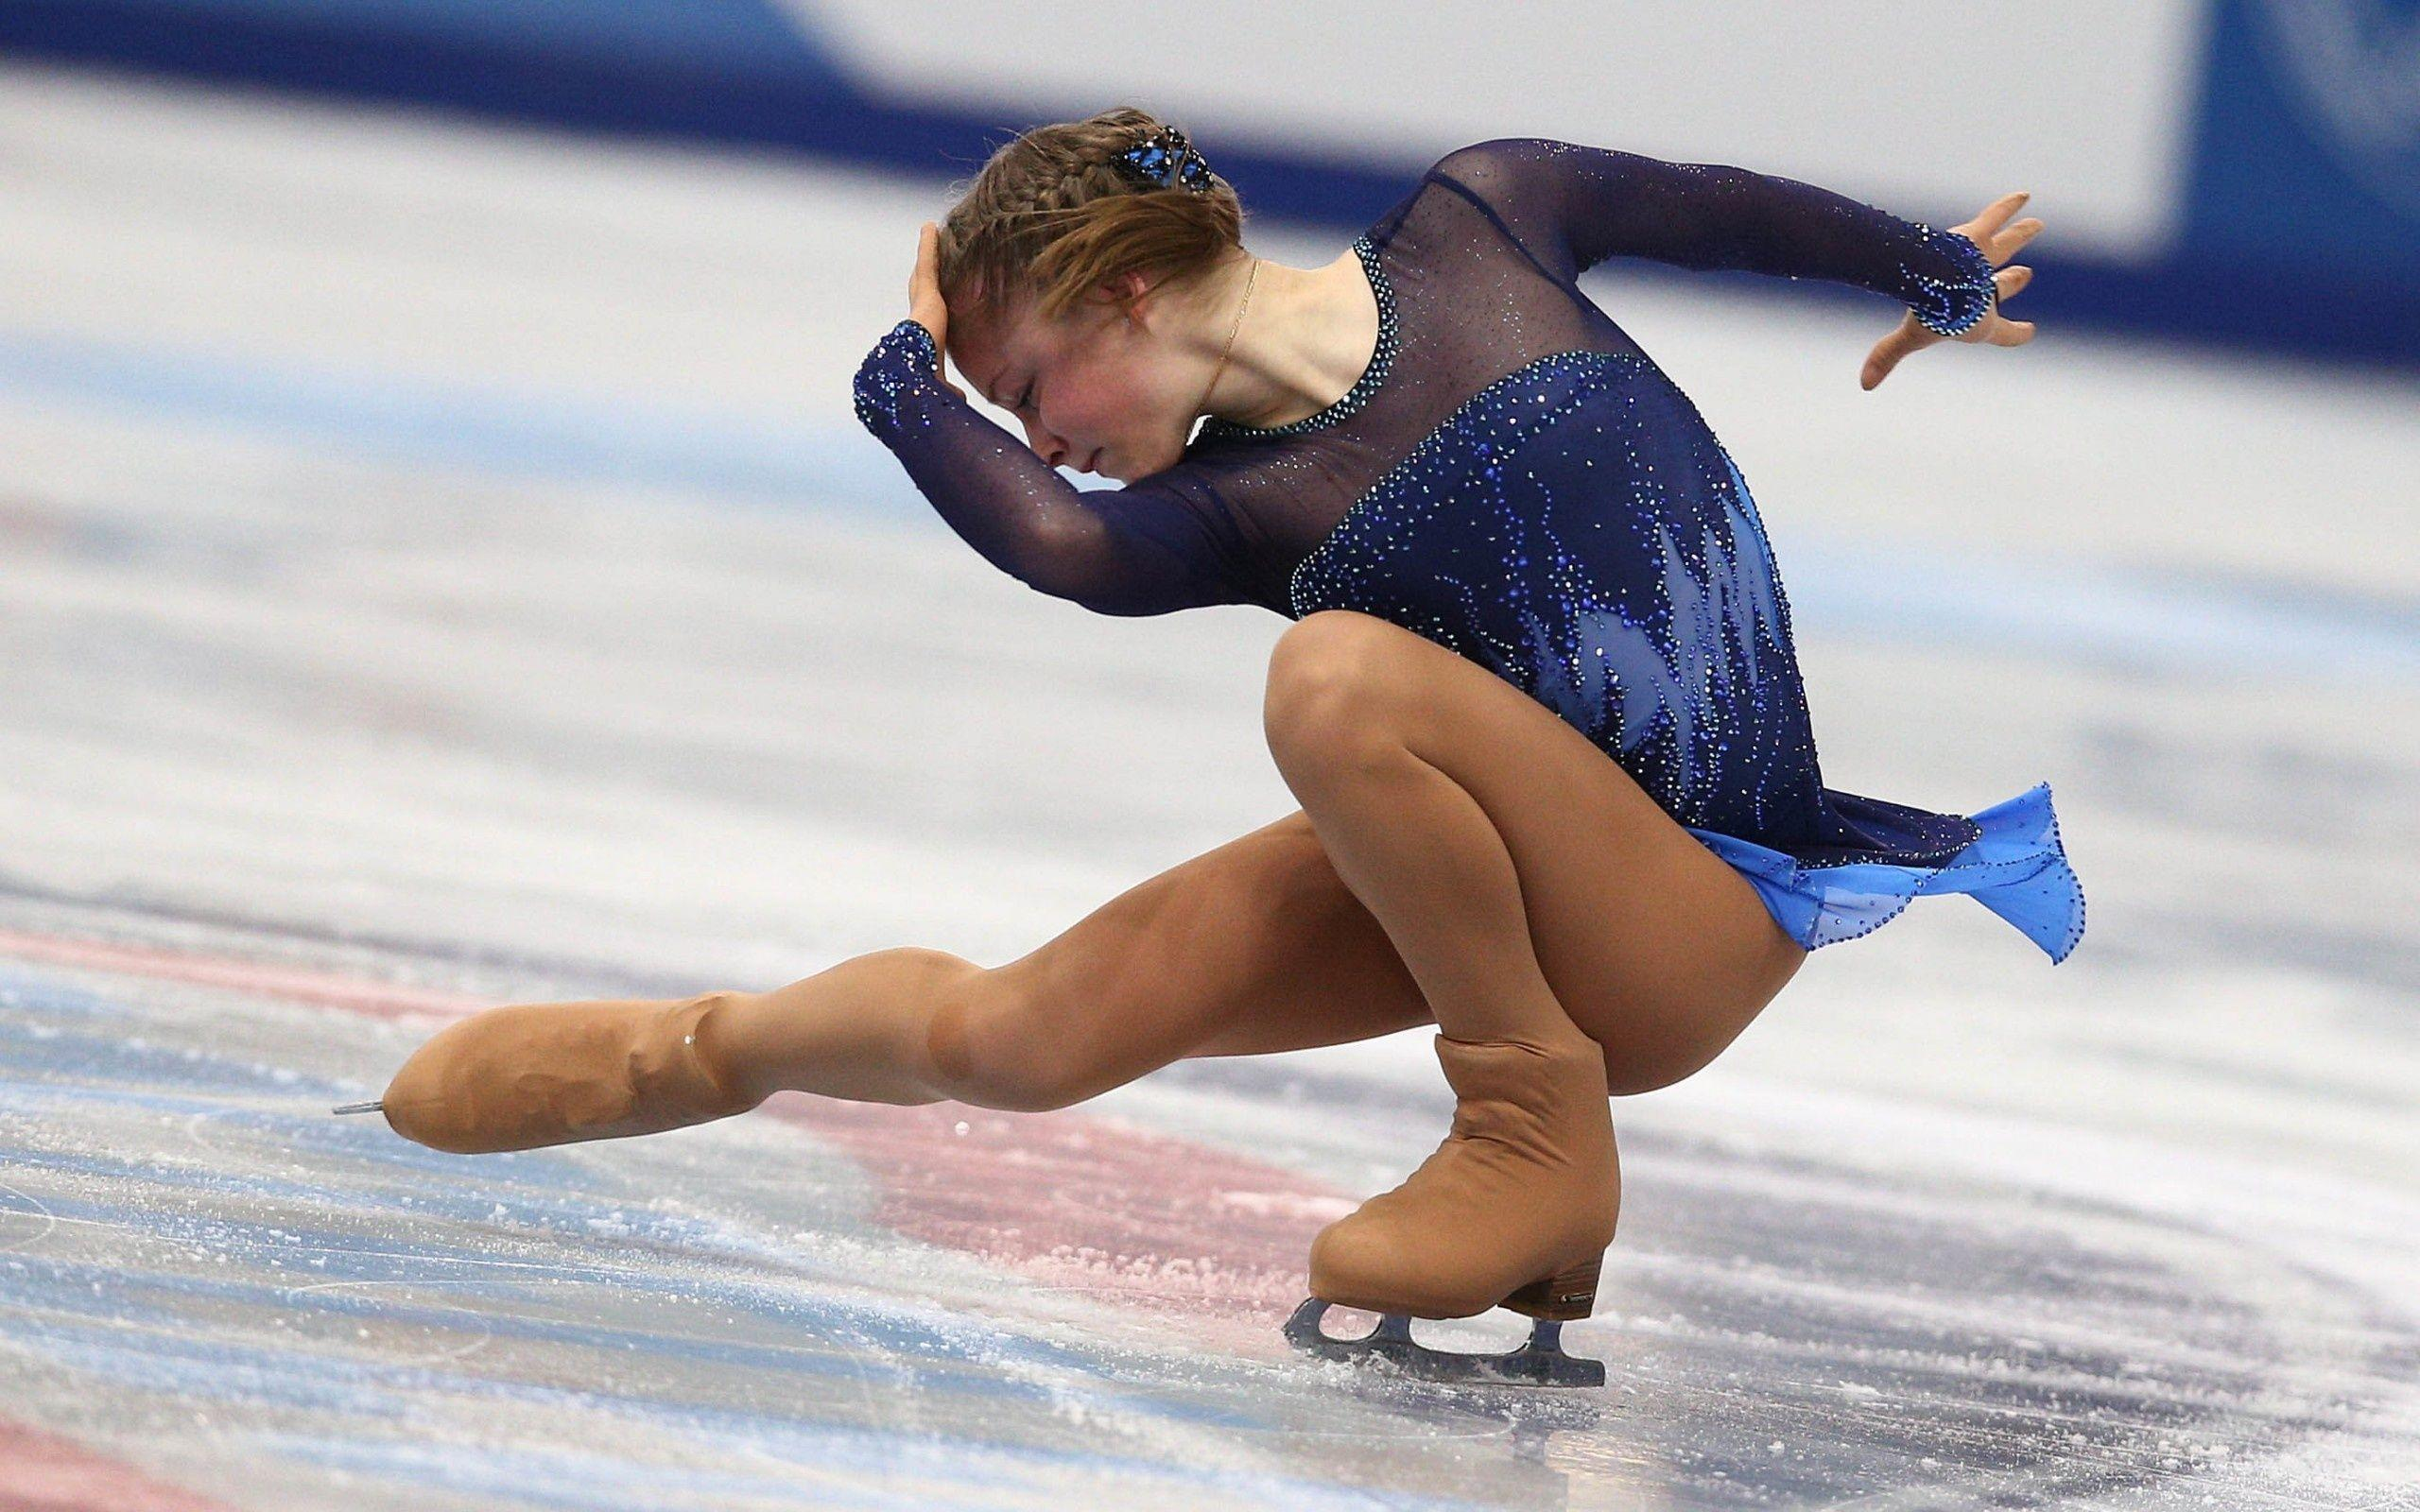 Wallpapers Yulia Lipnitskaya, skater, ice, Sochi 2014, olympic games